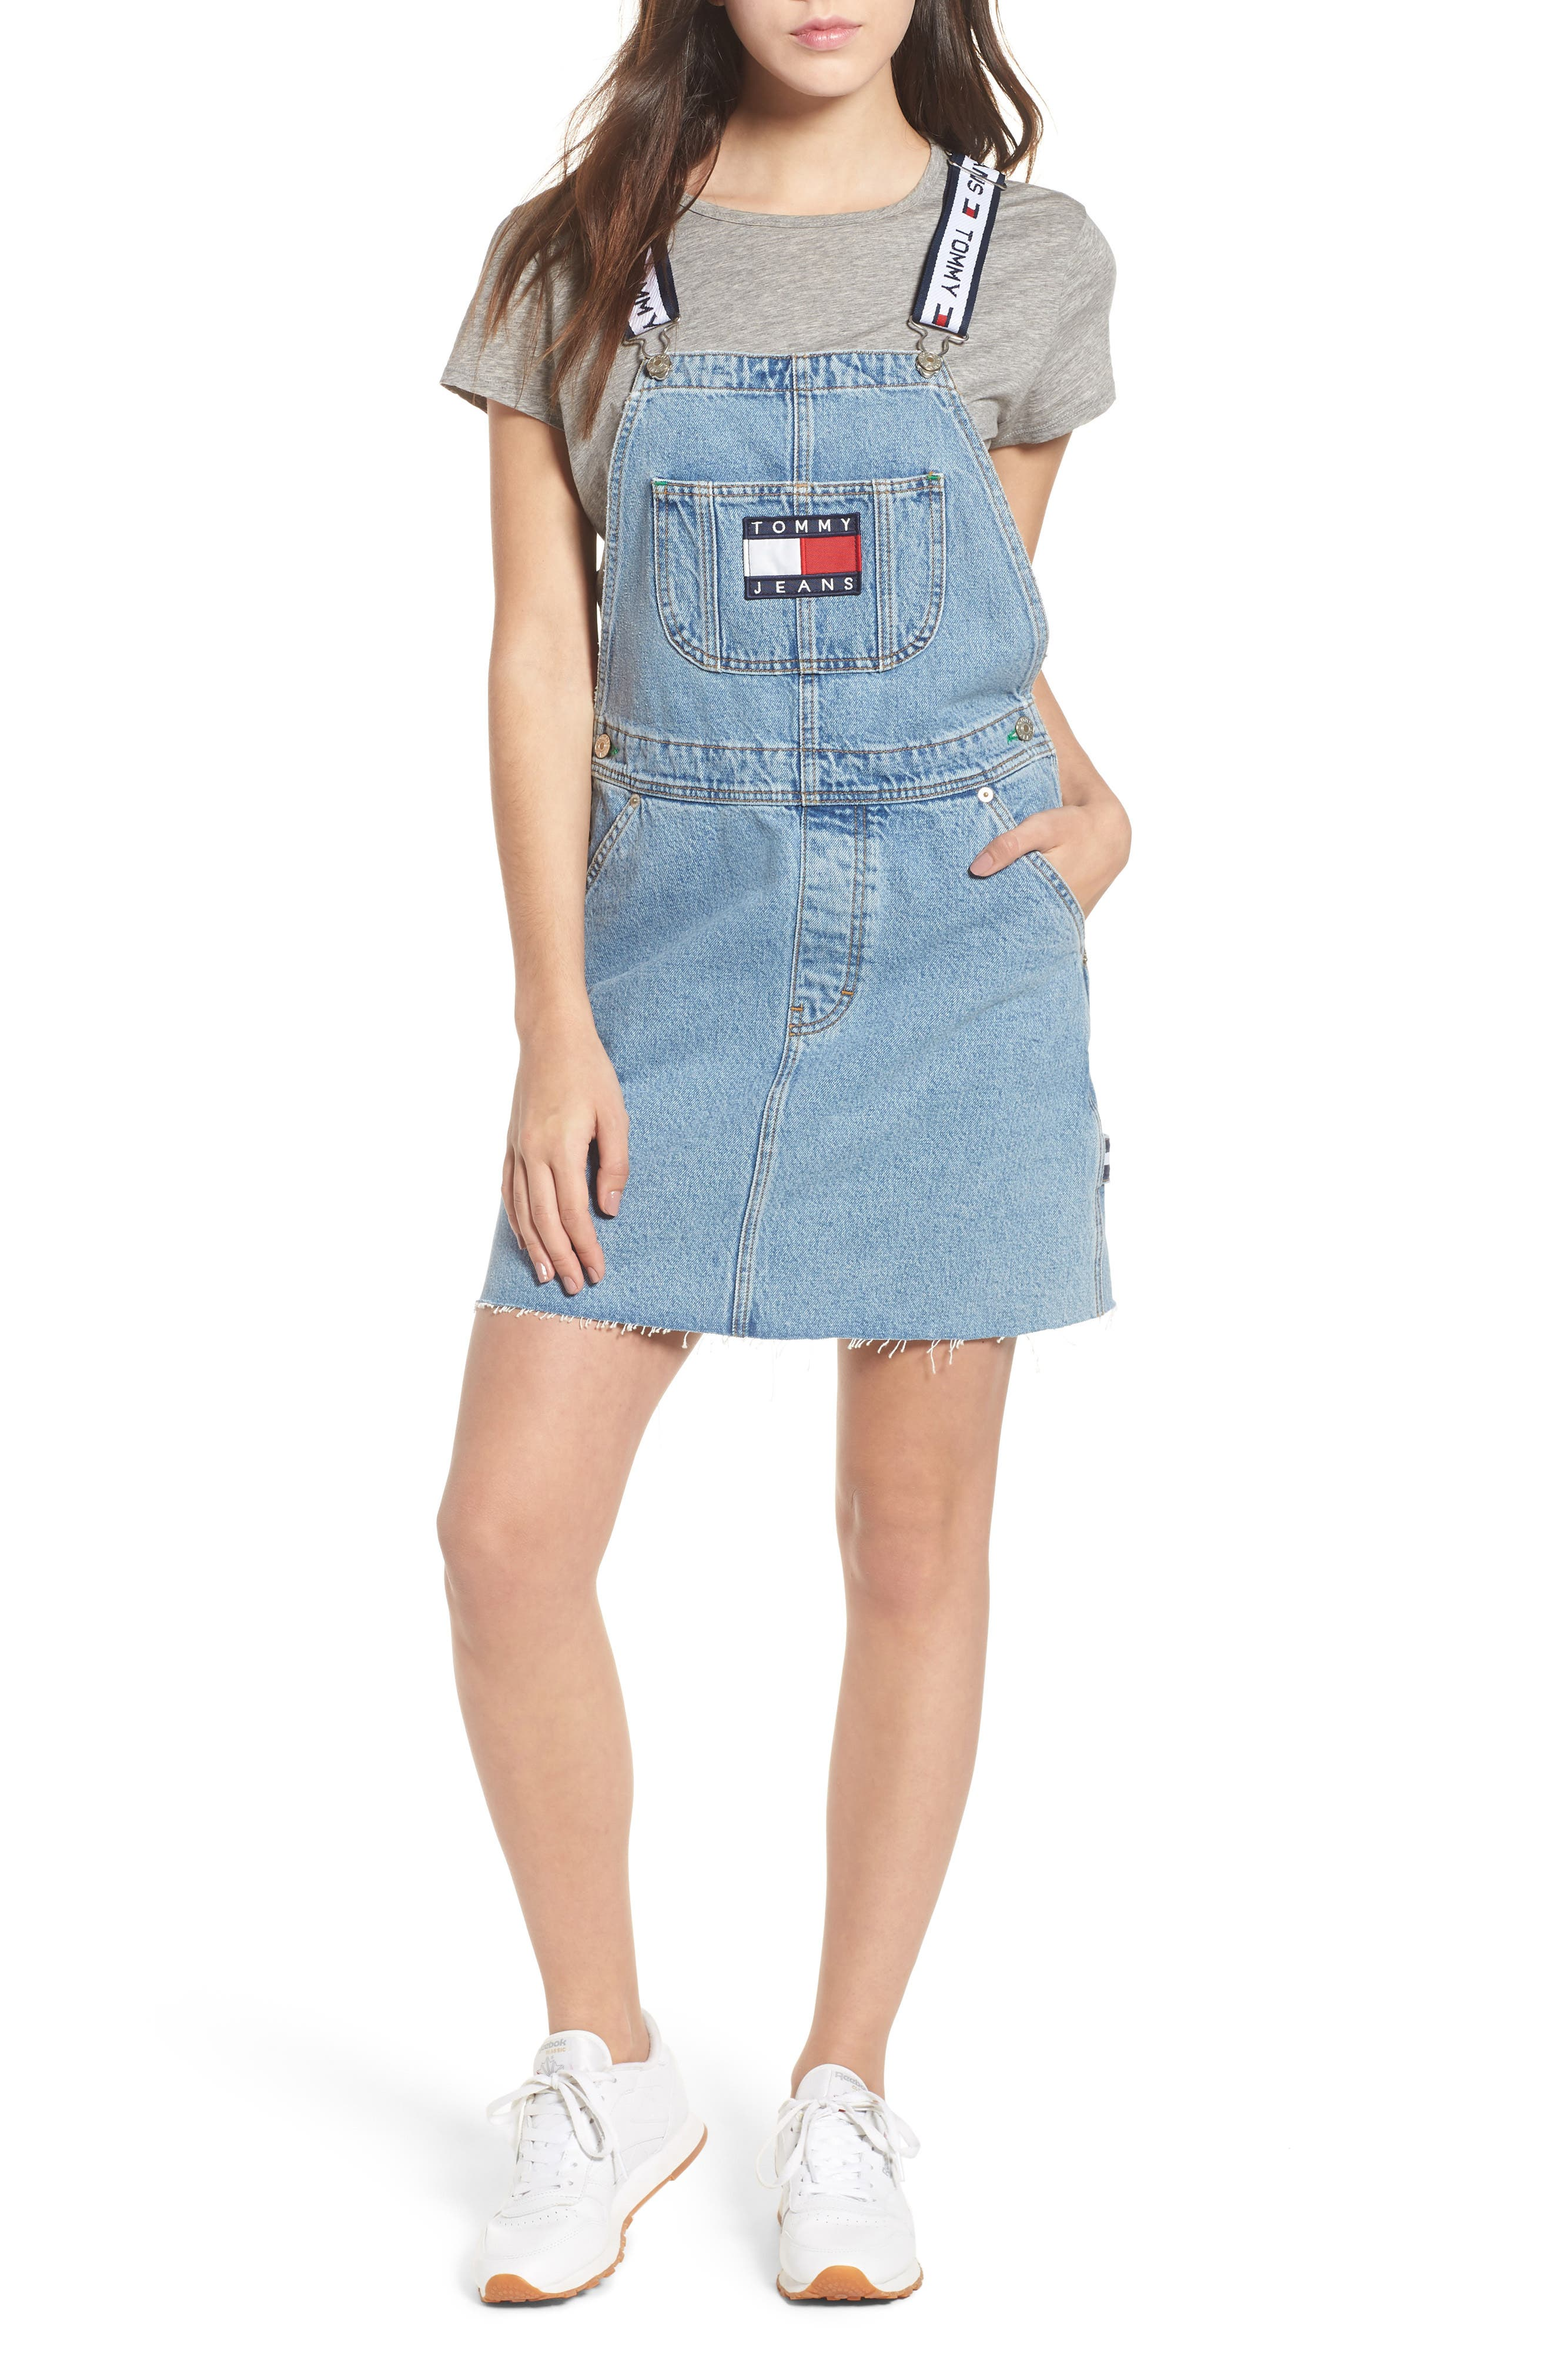 Dunagree Dress,                             Main thumbnail 1, color,                             Light Denim Blue